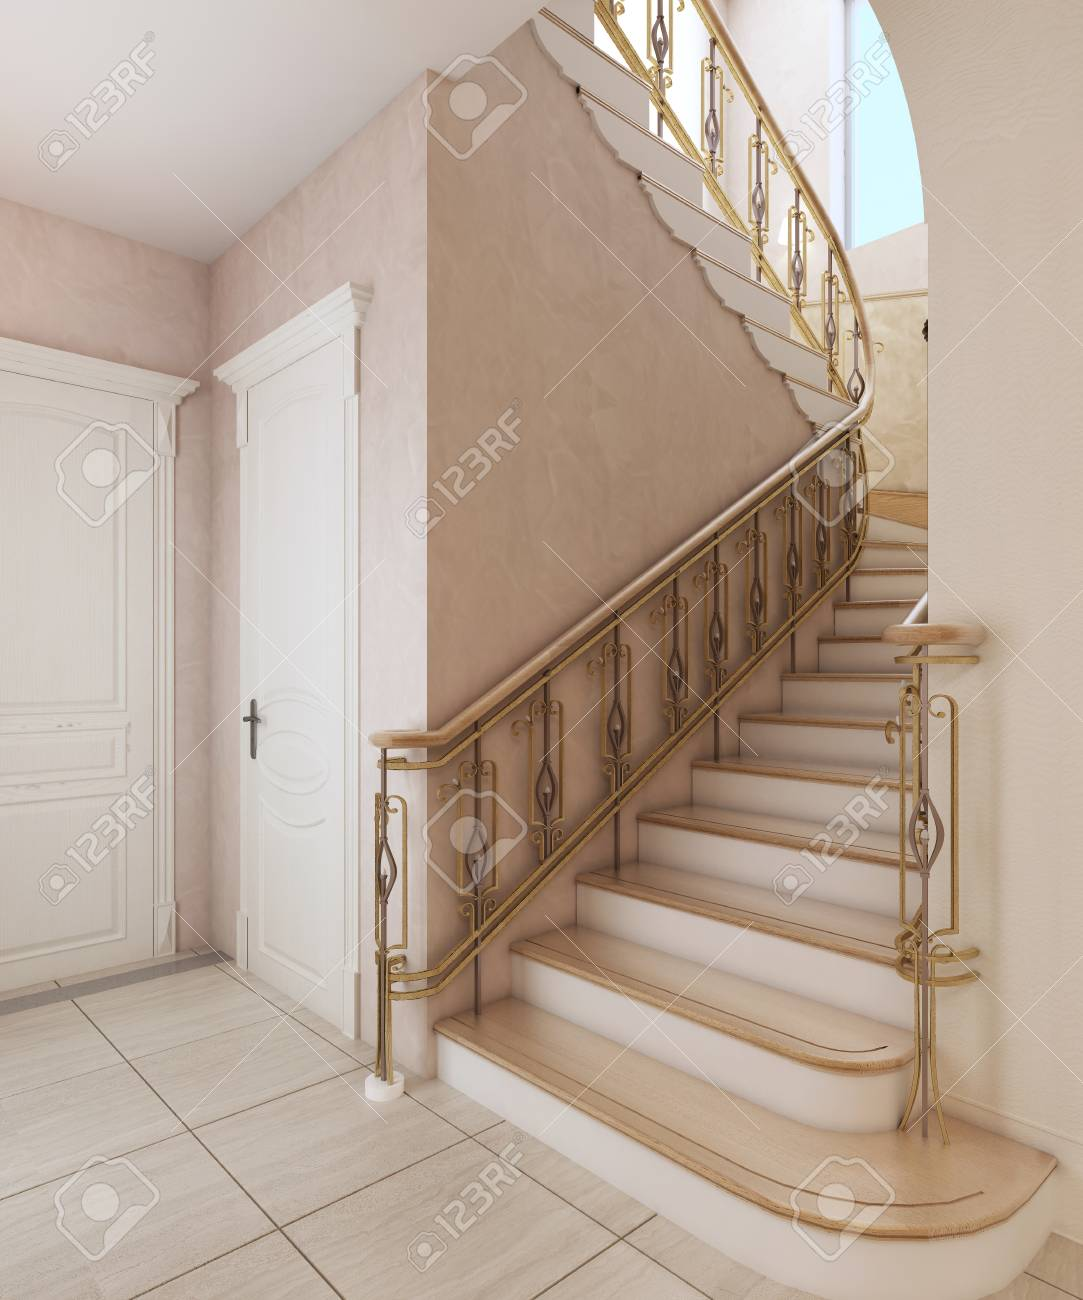 Staircase In The Interior Of A Private House In A Classic Design Stock Photo Picture And Royalty Free Image Image 113305965